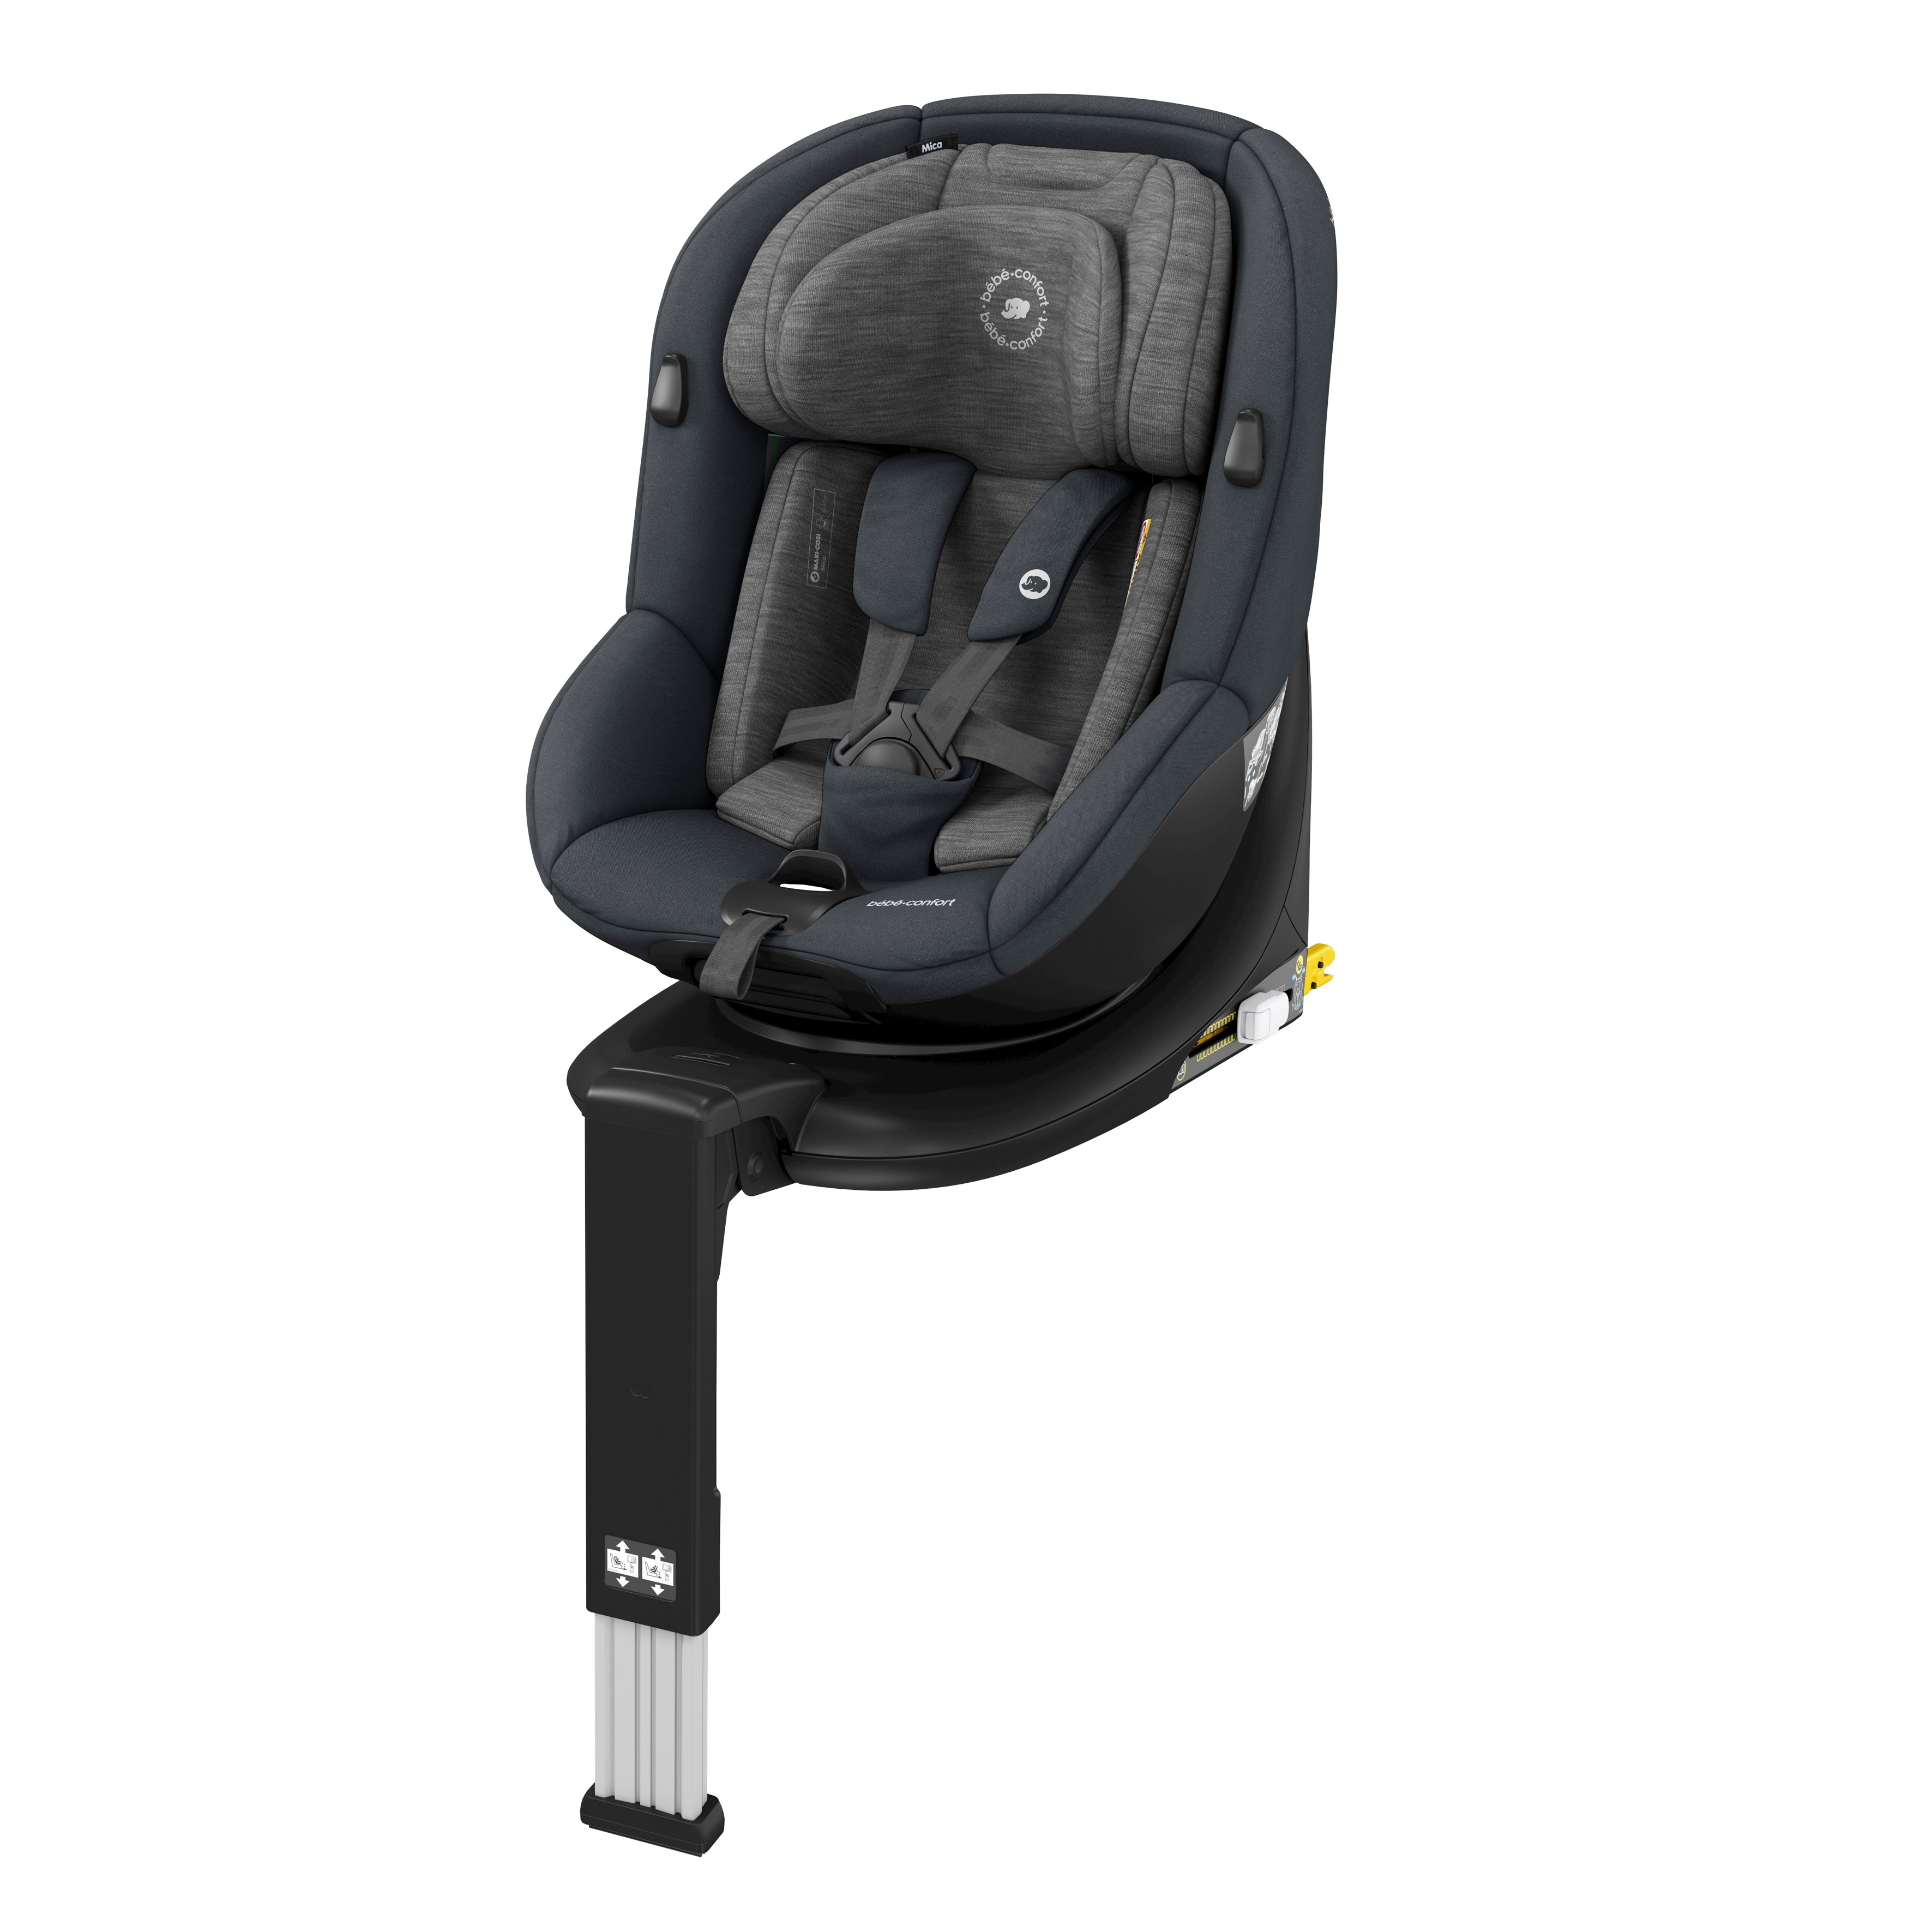 Bébé Confort Siège auto Mica - i-size Authentic graphite